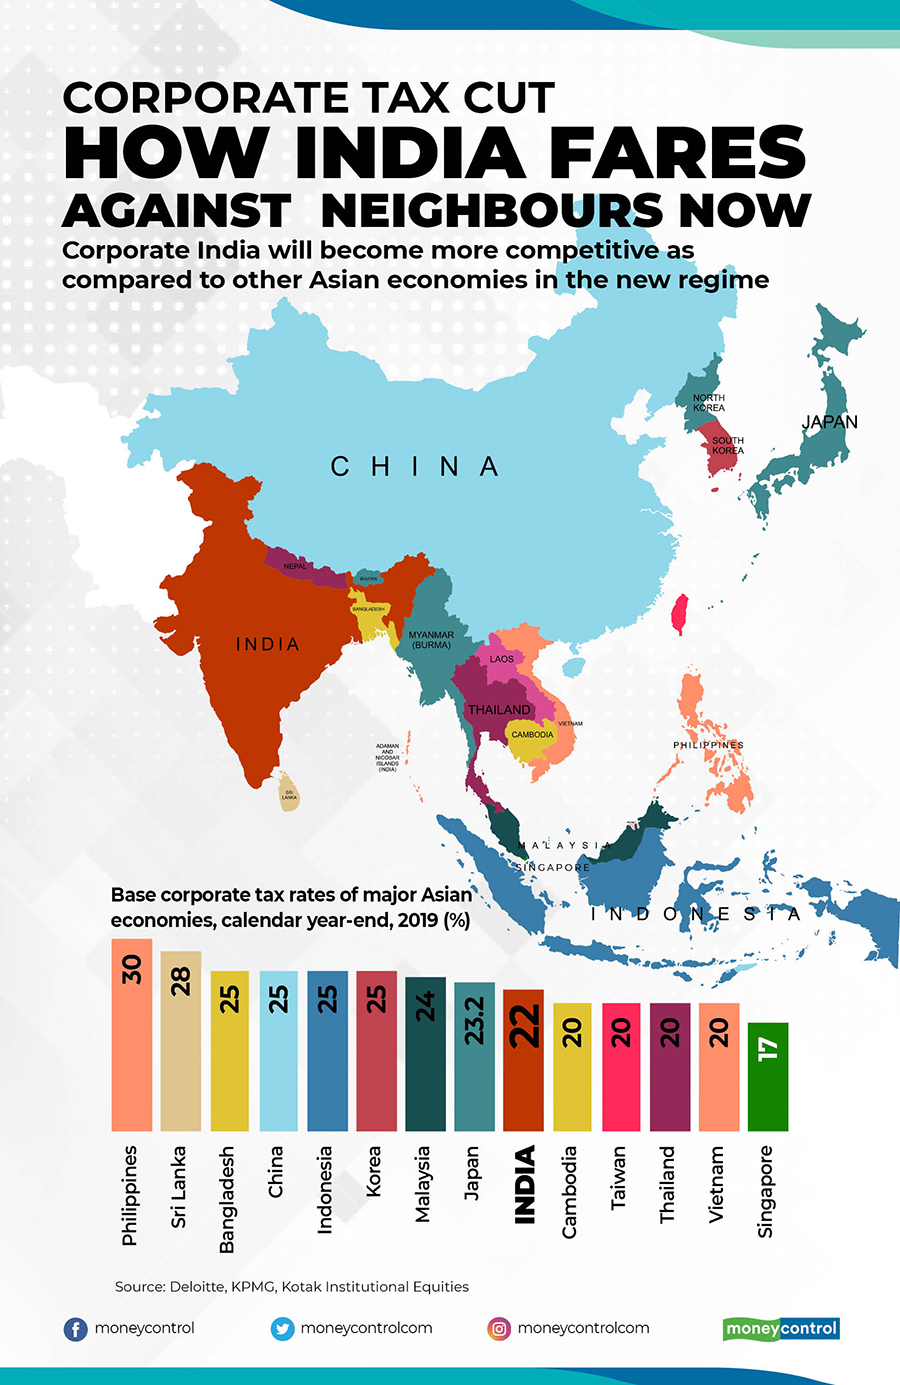 base corp tax of asian economies for website_R